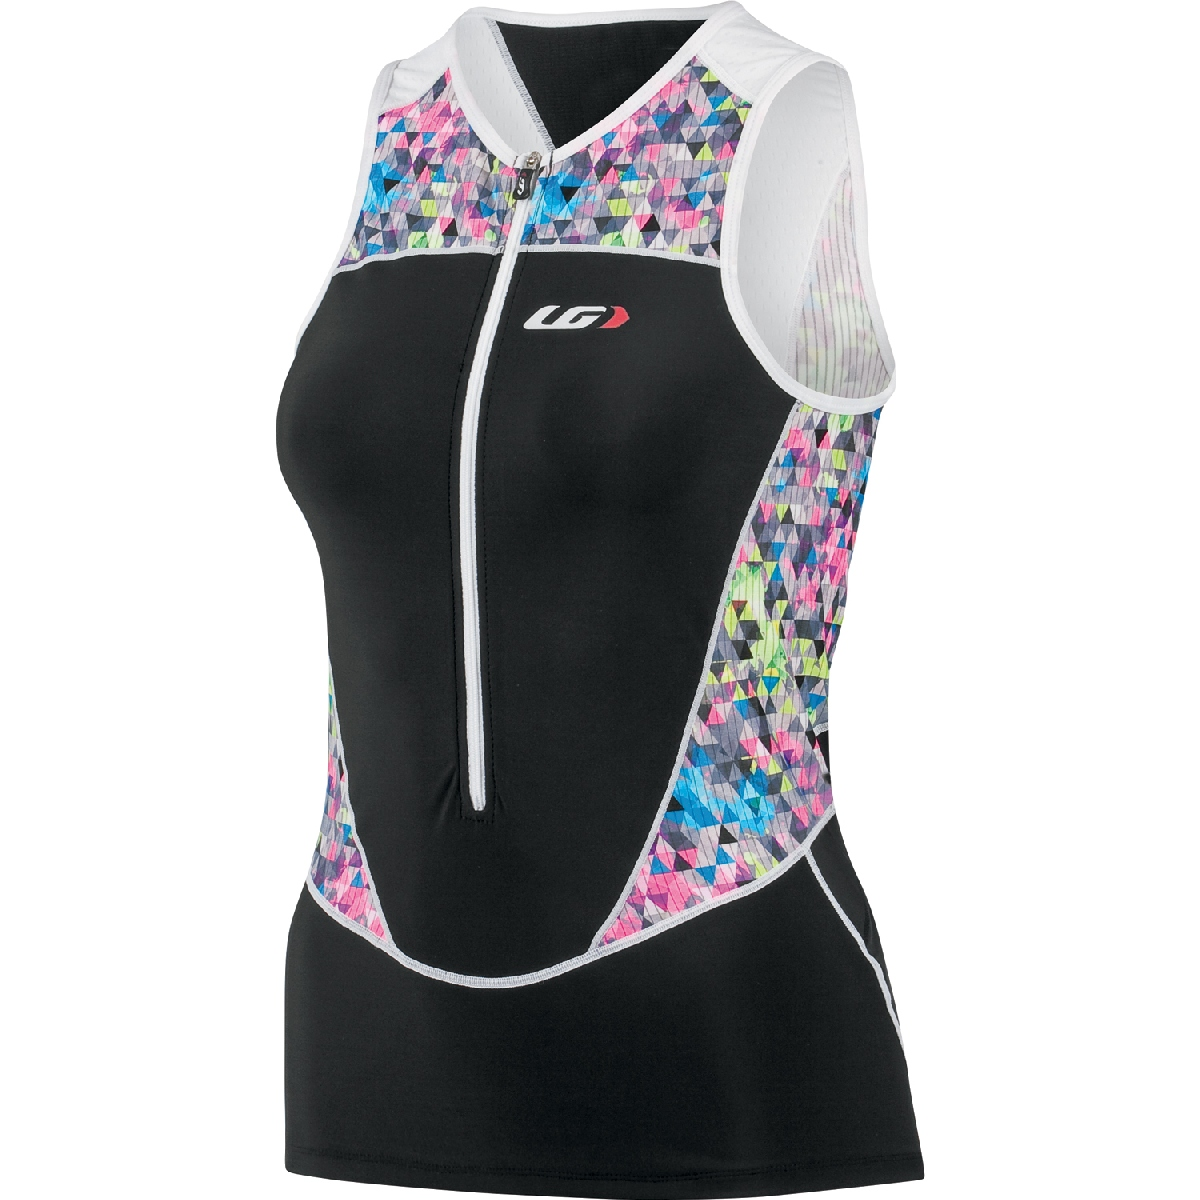 Louis Garneau Pro 2 Sleeveless Triathlon Top Women's Size L Black Multi U.S.A. & Canada